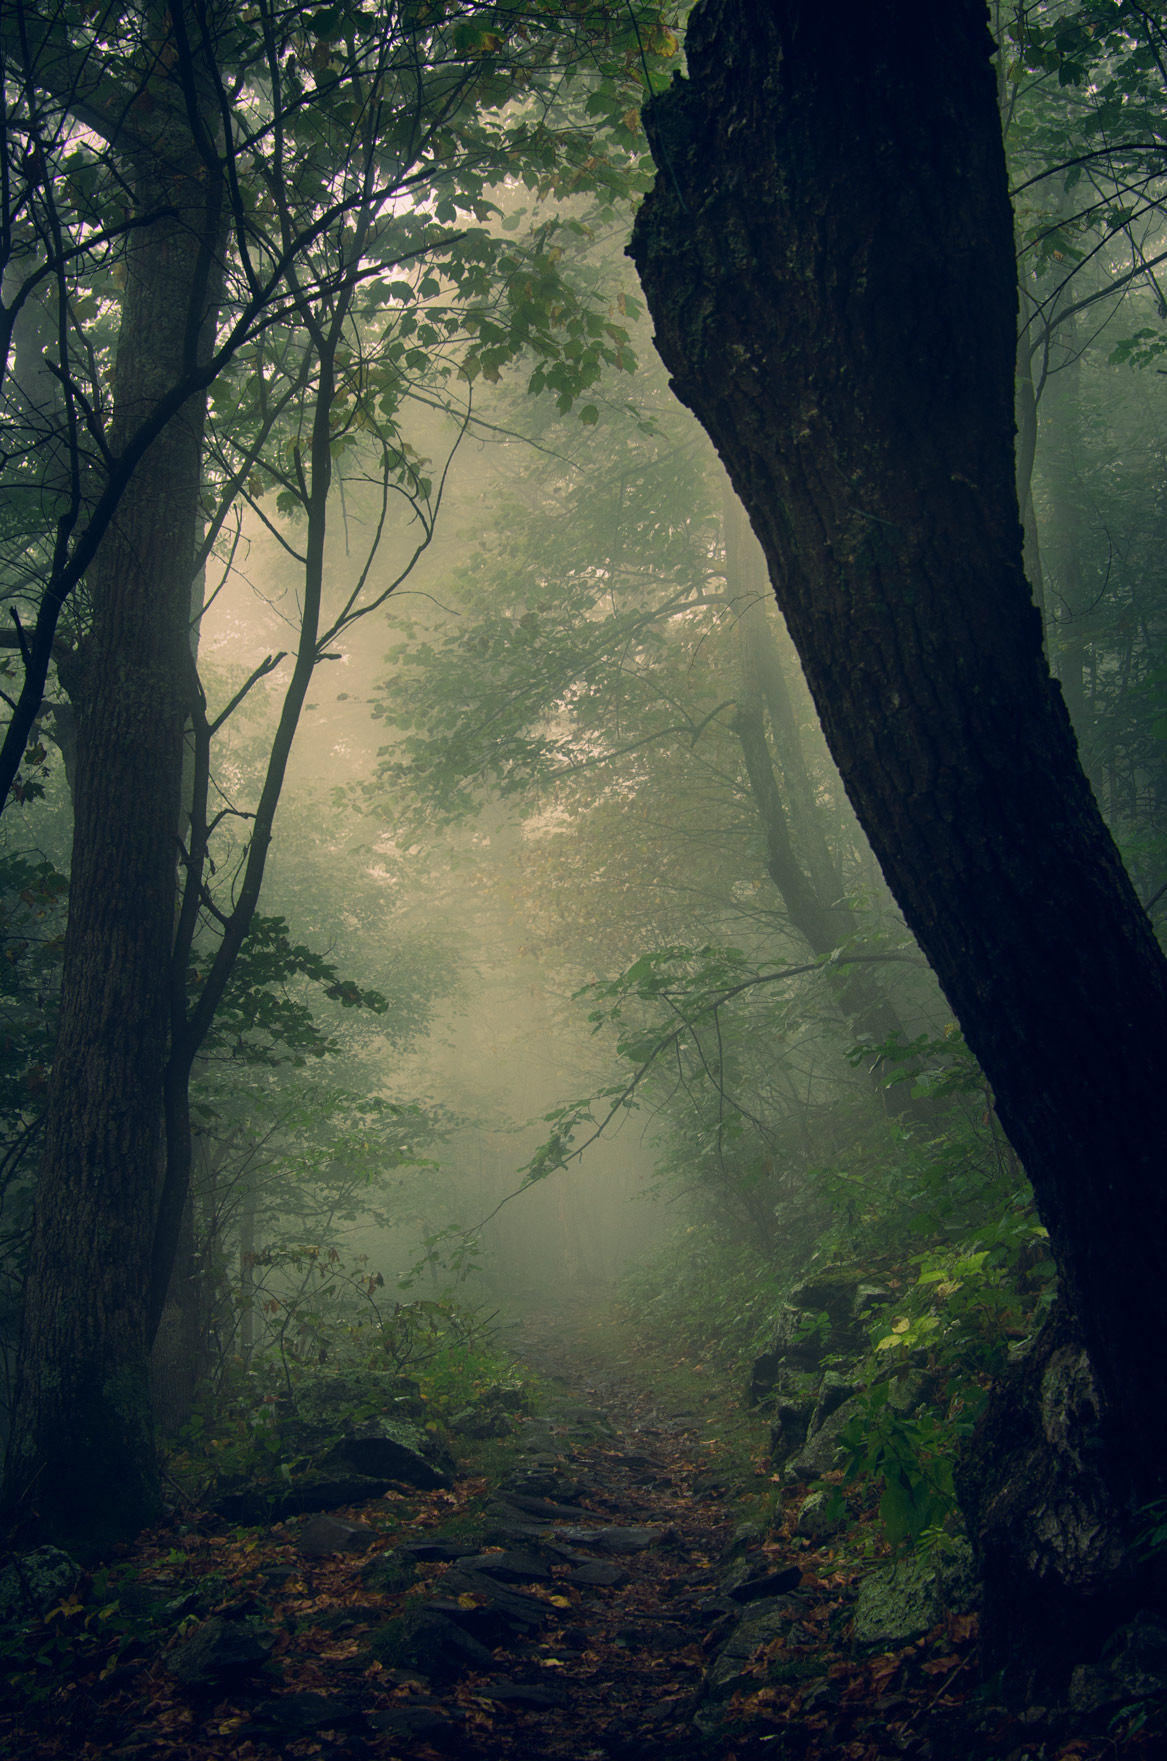 This is the image I selected to use as a background. I liked how the fog gave it extra creepy factor.